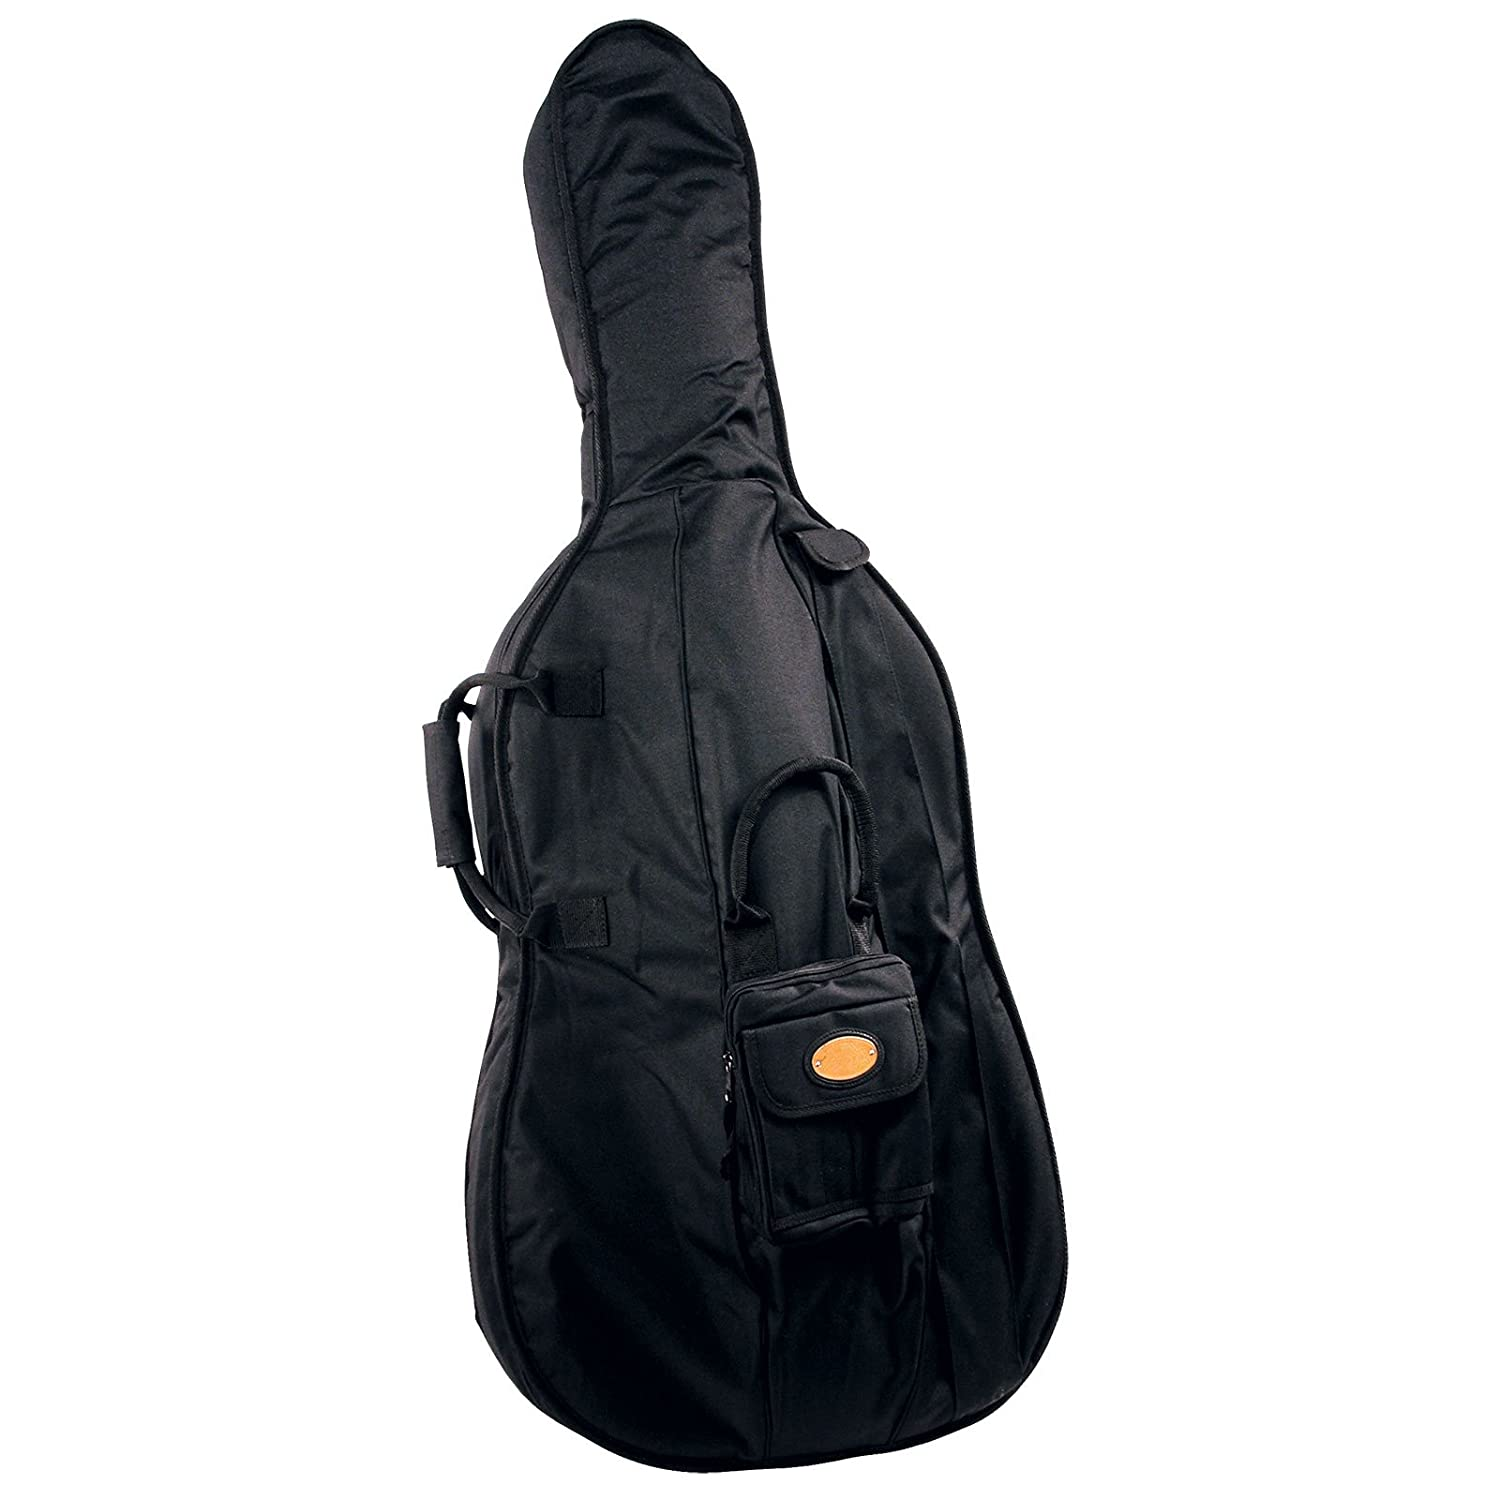 Amazon.com: Cello - Bags & Cases: Musical Instruments